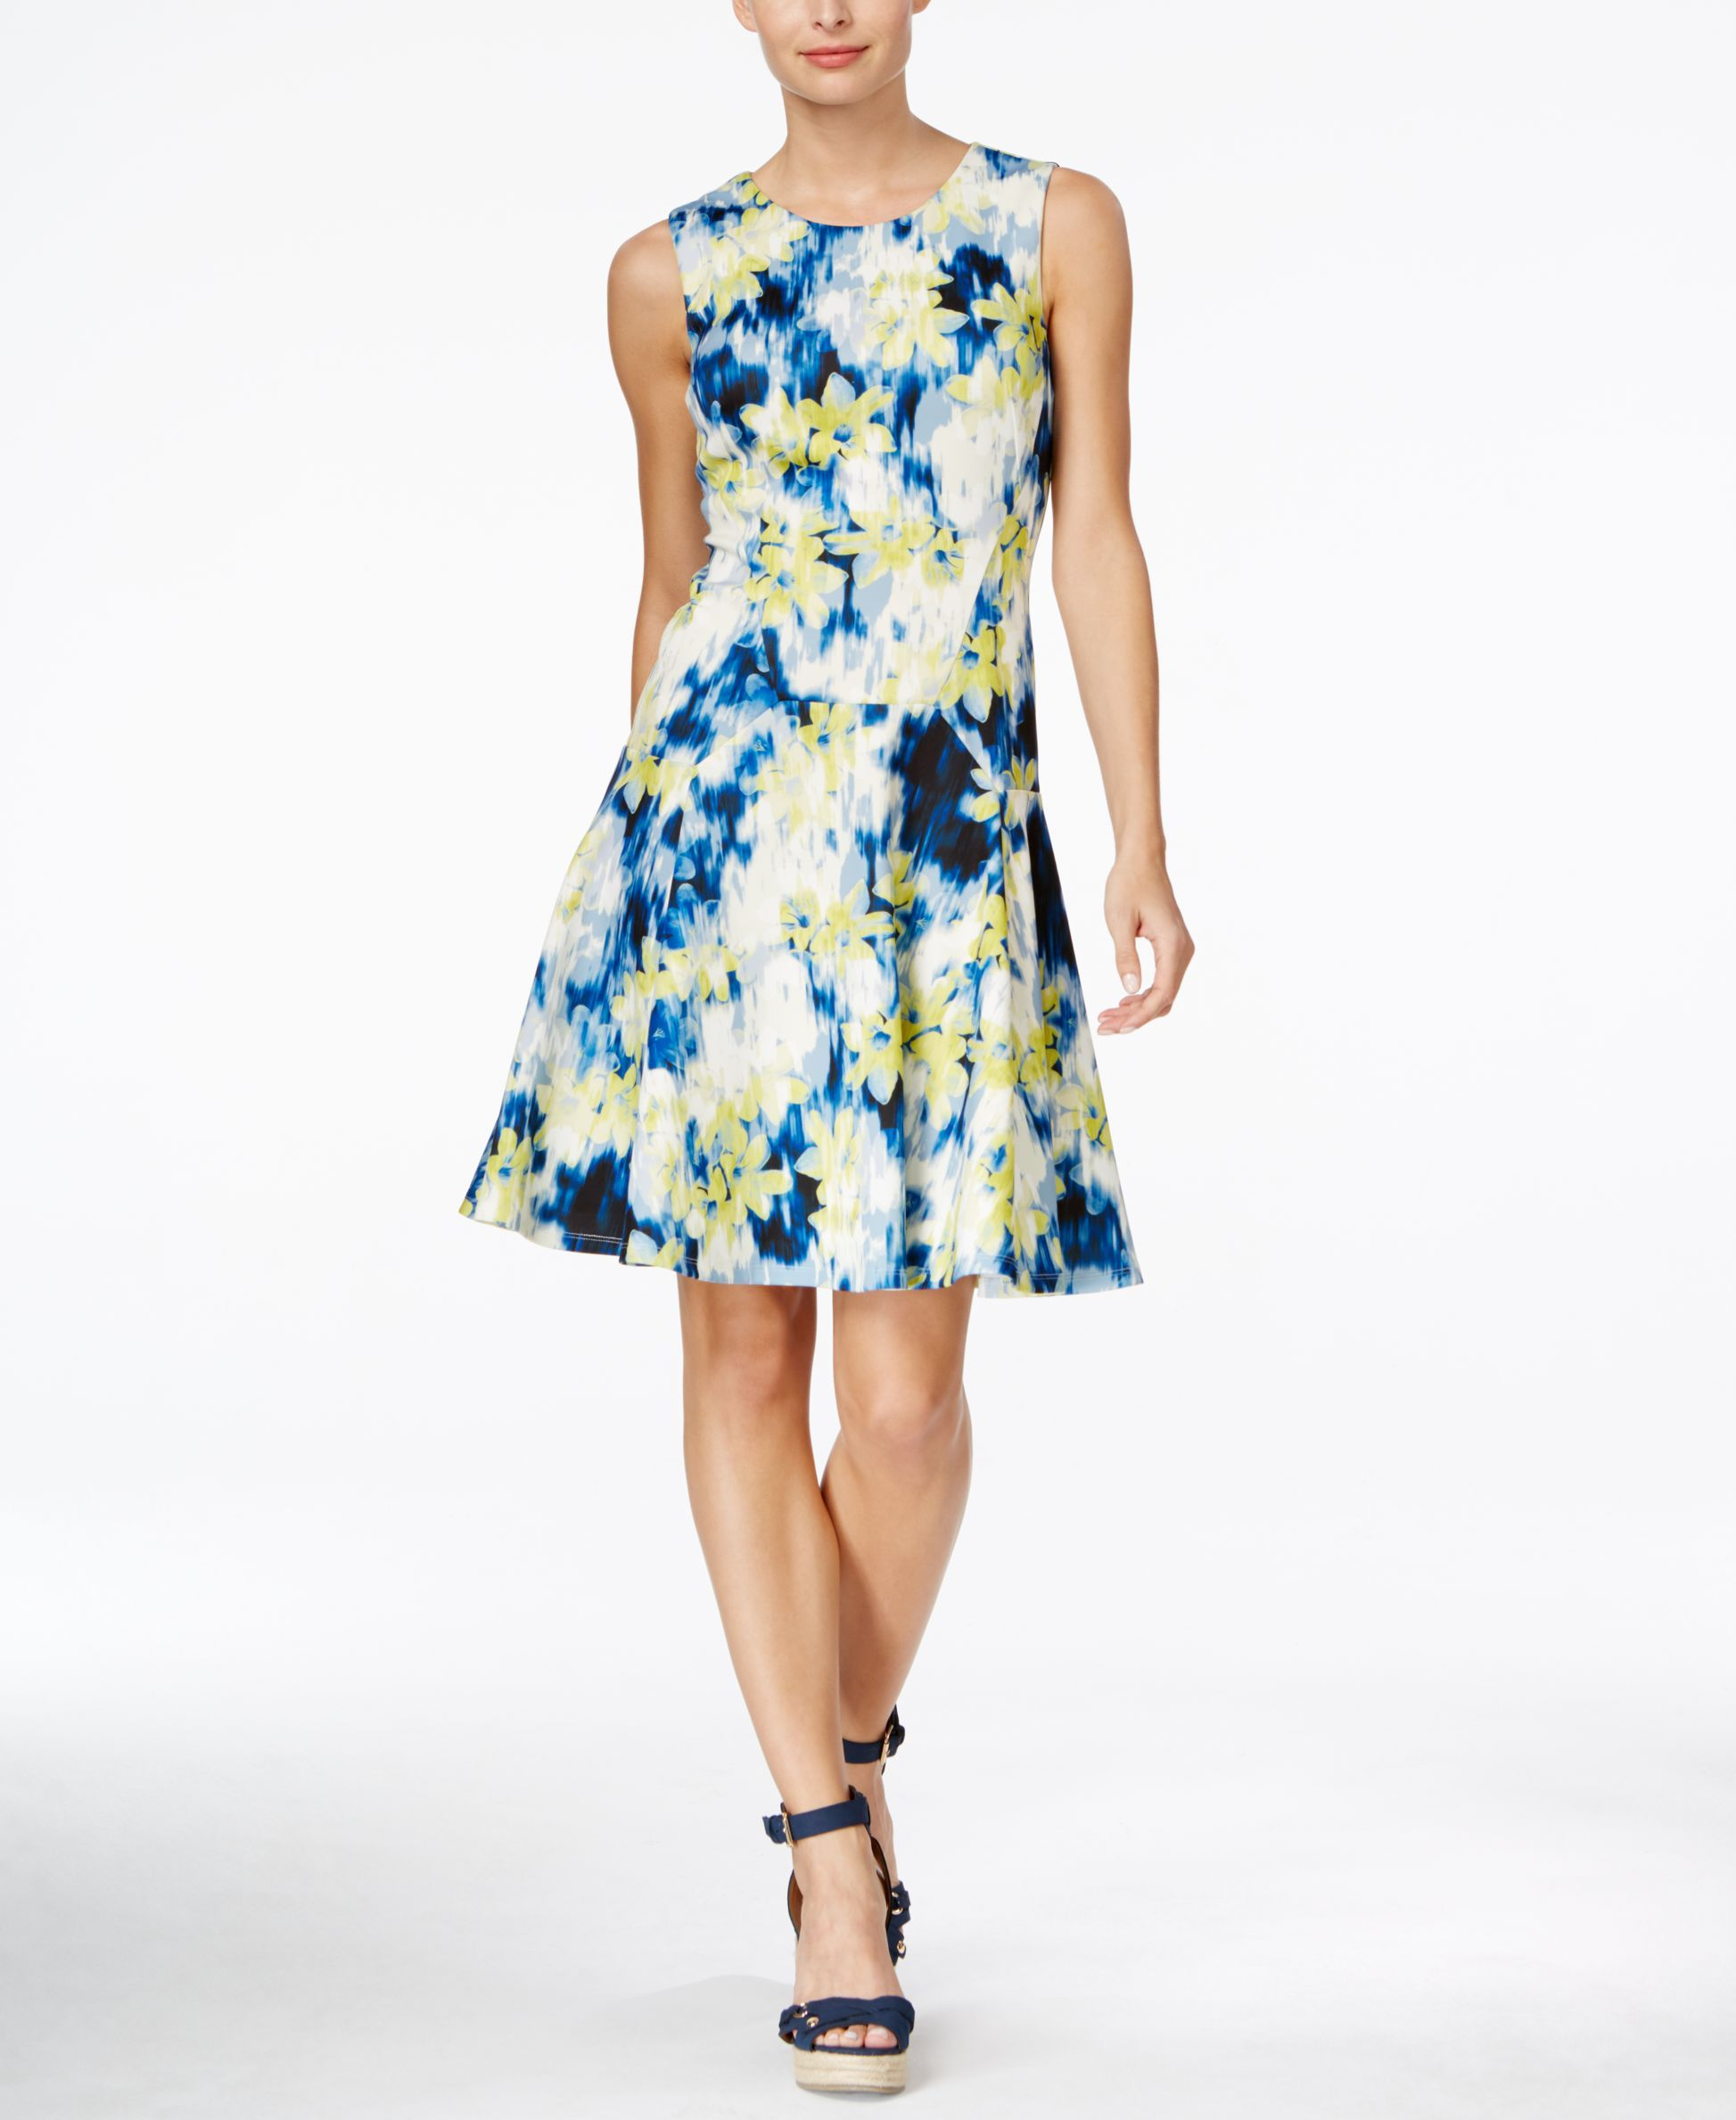 d4ac66d4b18 Tommy Hilfiger Sleeveless Floral-Prin Fit & Flare Dress | Products ...